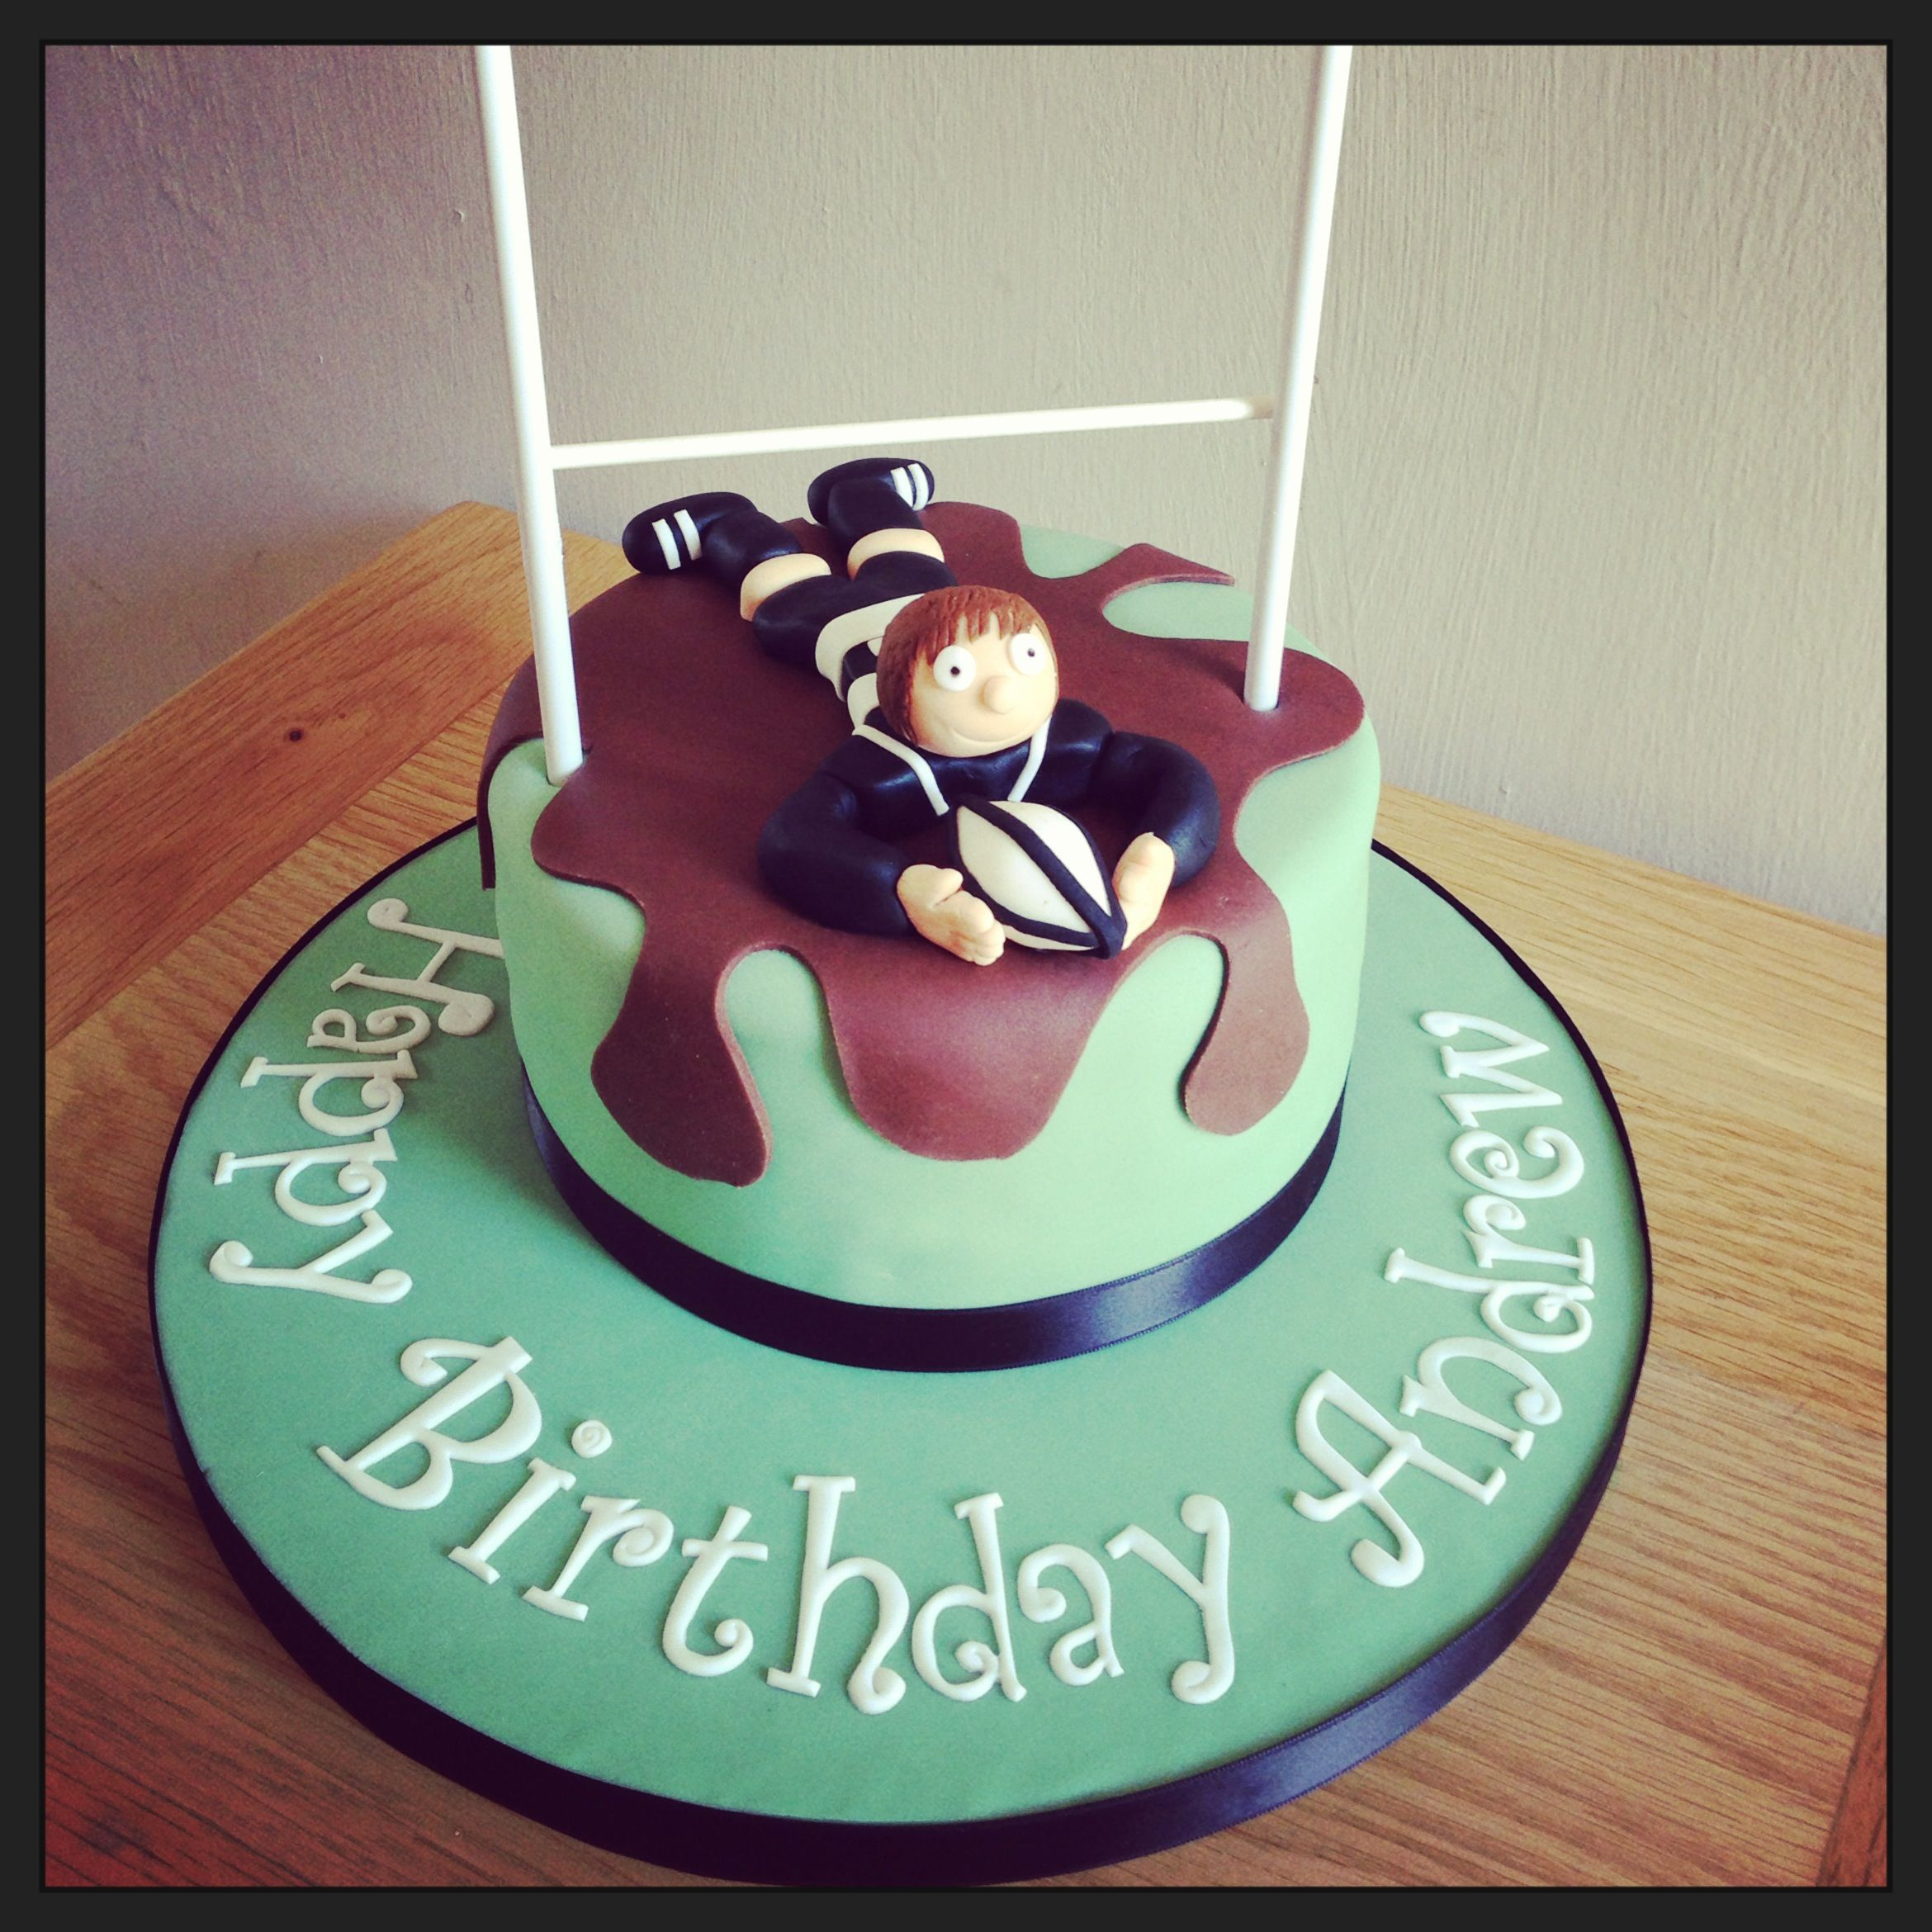 Fabulous Rugby Themed Cake With Kit Matched To The Stratford Upon Avon Funny Birthday Cards Online Benoljebrpdamsfinfo